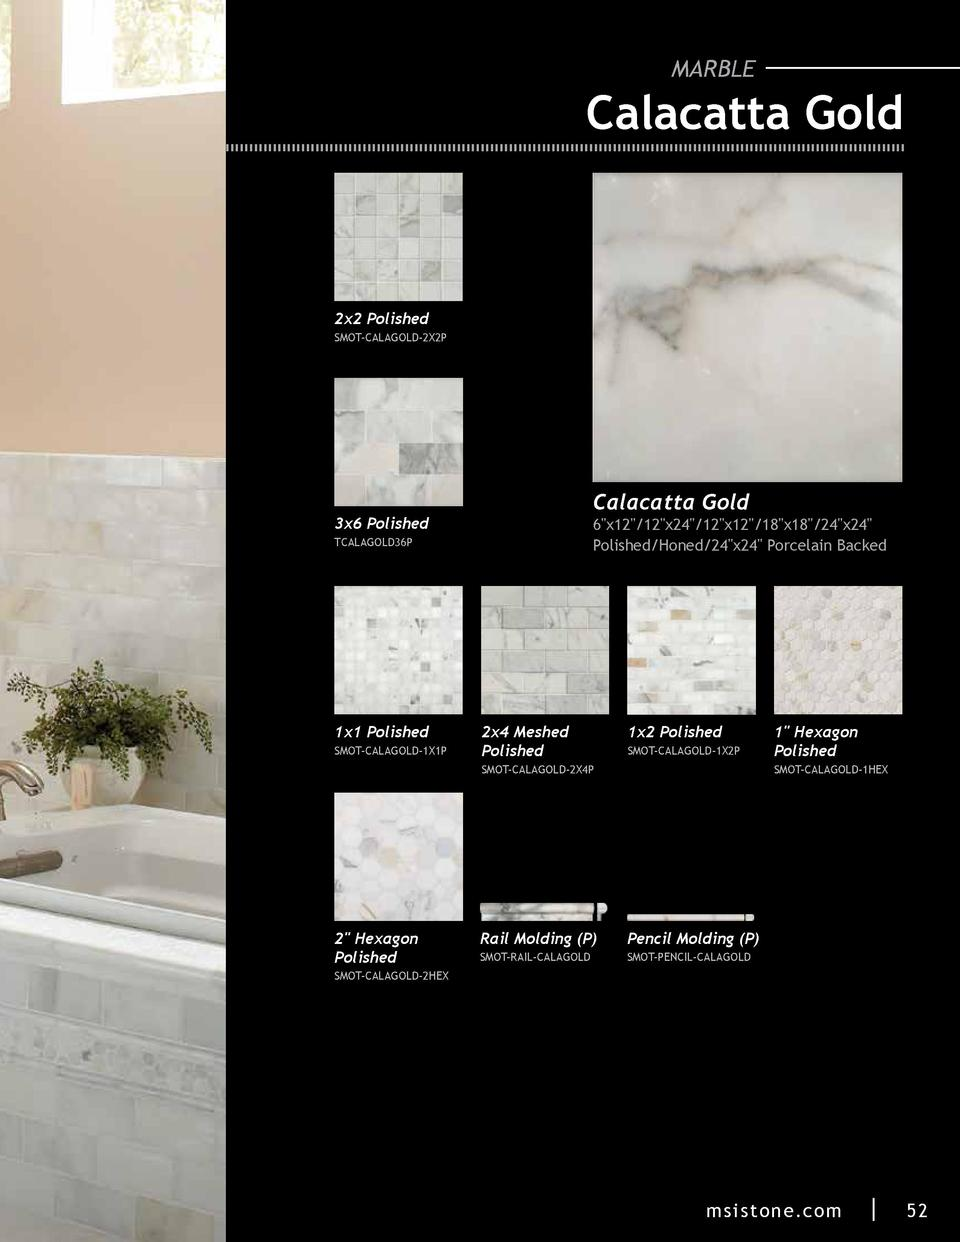 MARBLE  Calacatta Gold  2x2 Polished SMOT-CALAGOLD-2X2P  Calacatta Gold  3x6 Polished  6 x12  12 x24  12 x12  18 x18  24 x...